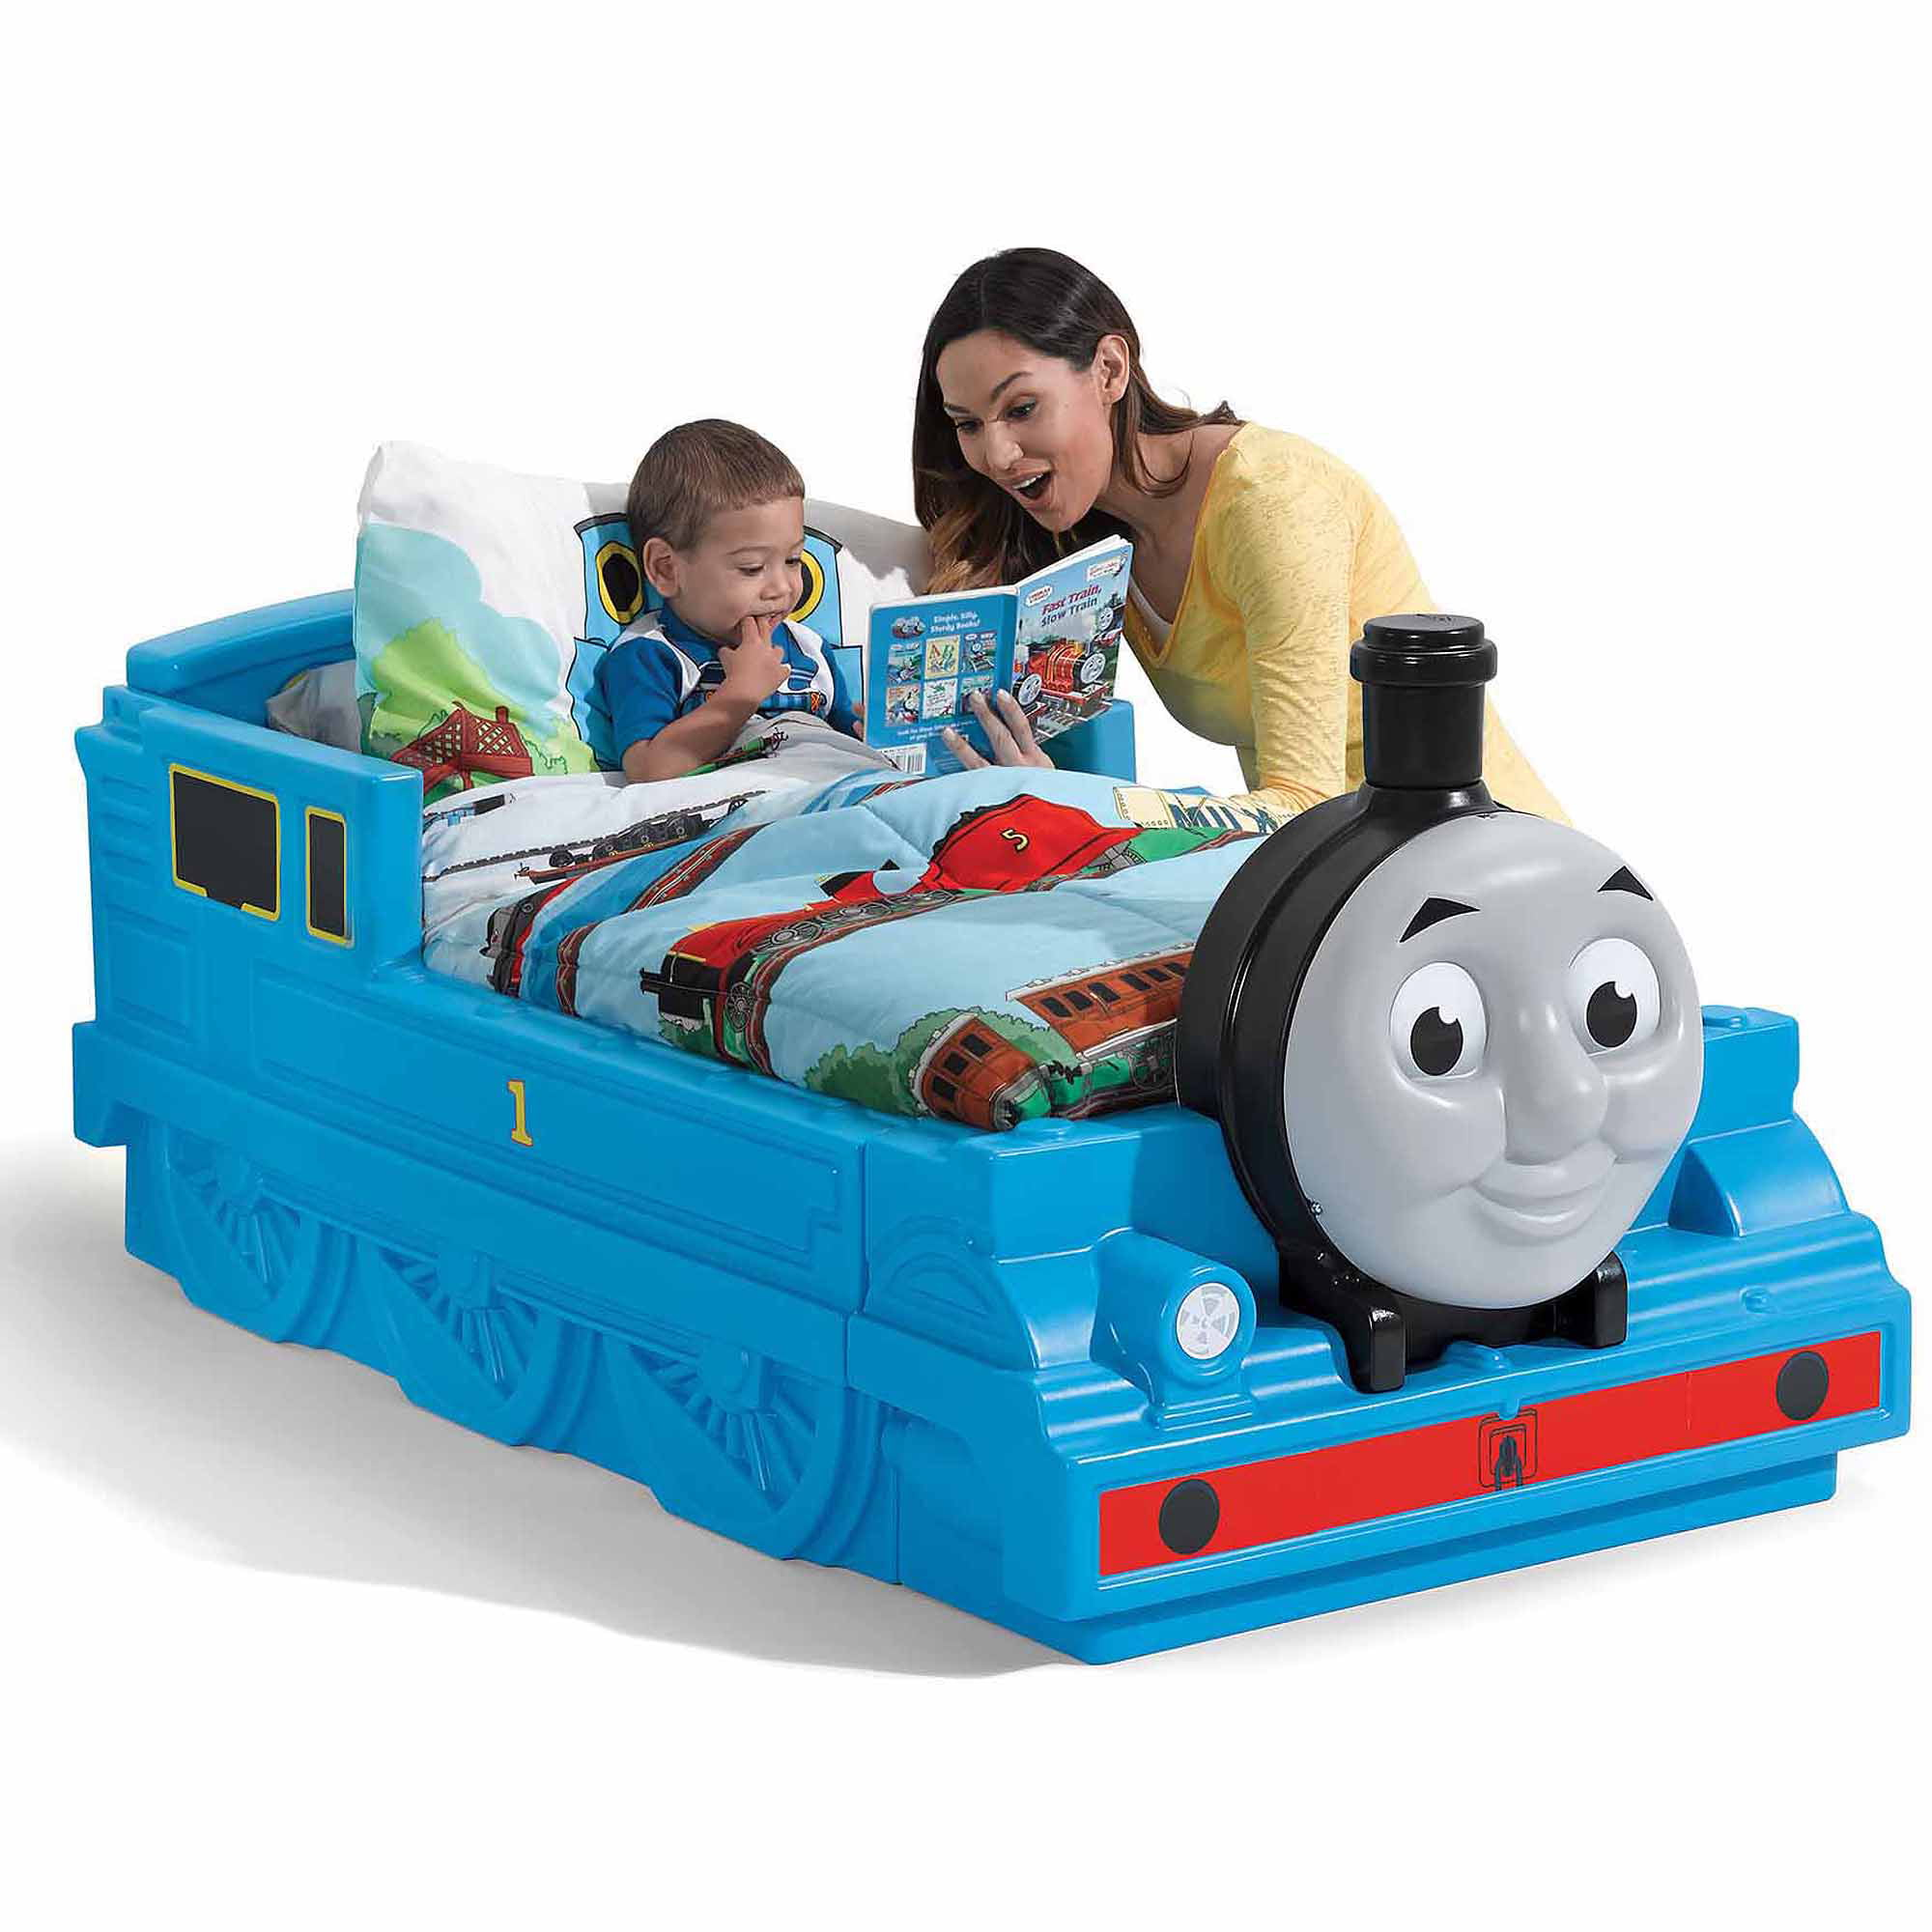 Thomas the Tank Engine Toddler Bed - Walmart.com on thomas the train wheel, thomas the train parts, thomas the train car, thomas the train skateboard, thomas the train ambulance, thomas the train electric scooter, thomas the train jeep, thomas the train submarine, thomas the train tractor, thomas the train computer, thomas the train 4 wheeler, thomas the train construction, under the sea golf cart, thomas the train wheelchair, thomas the train eagle, thomas the train lawn mower, thomas the train quad, thomas the train dodge, thomas the train sweeper, thomas the train forklift,